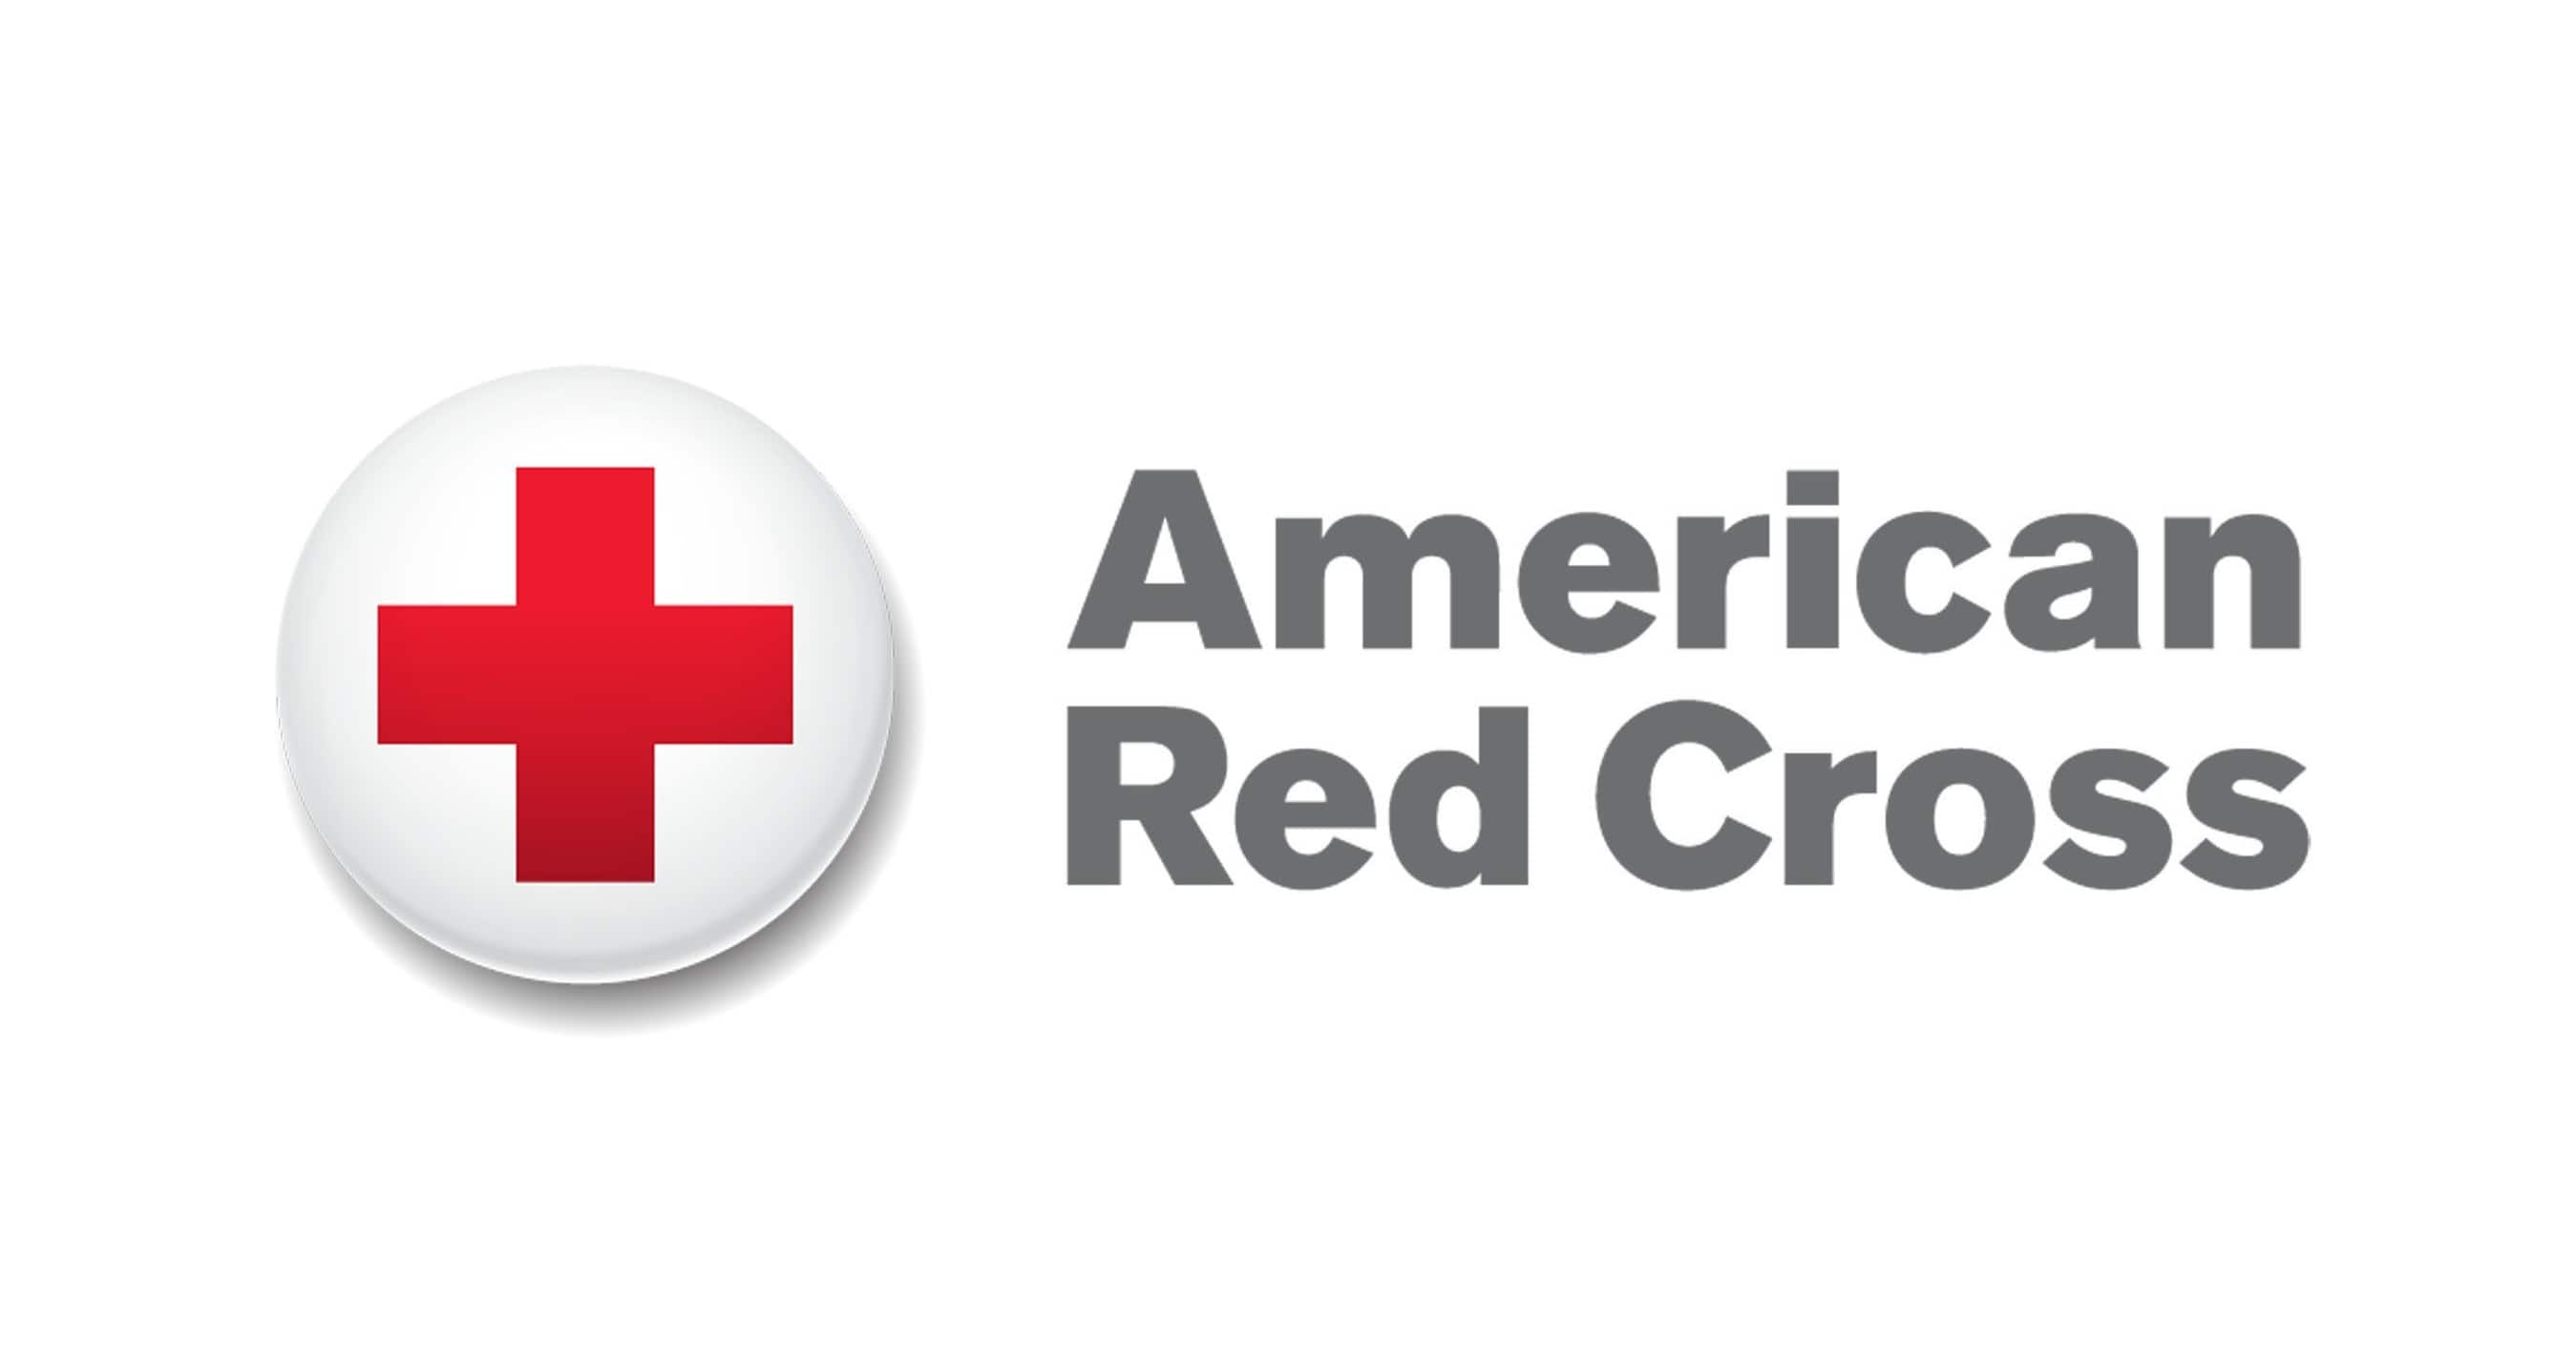 American Red Cross: Donate Blood, Platelet or AB Elite Plasma & Recieve a Free $5 Amazon Gift Card (April 1-30, 2020)